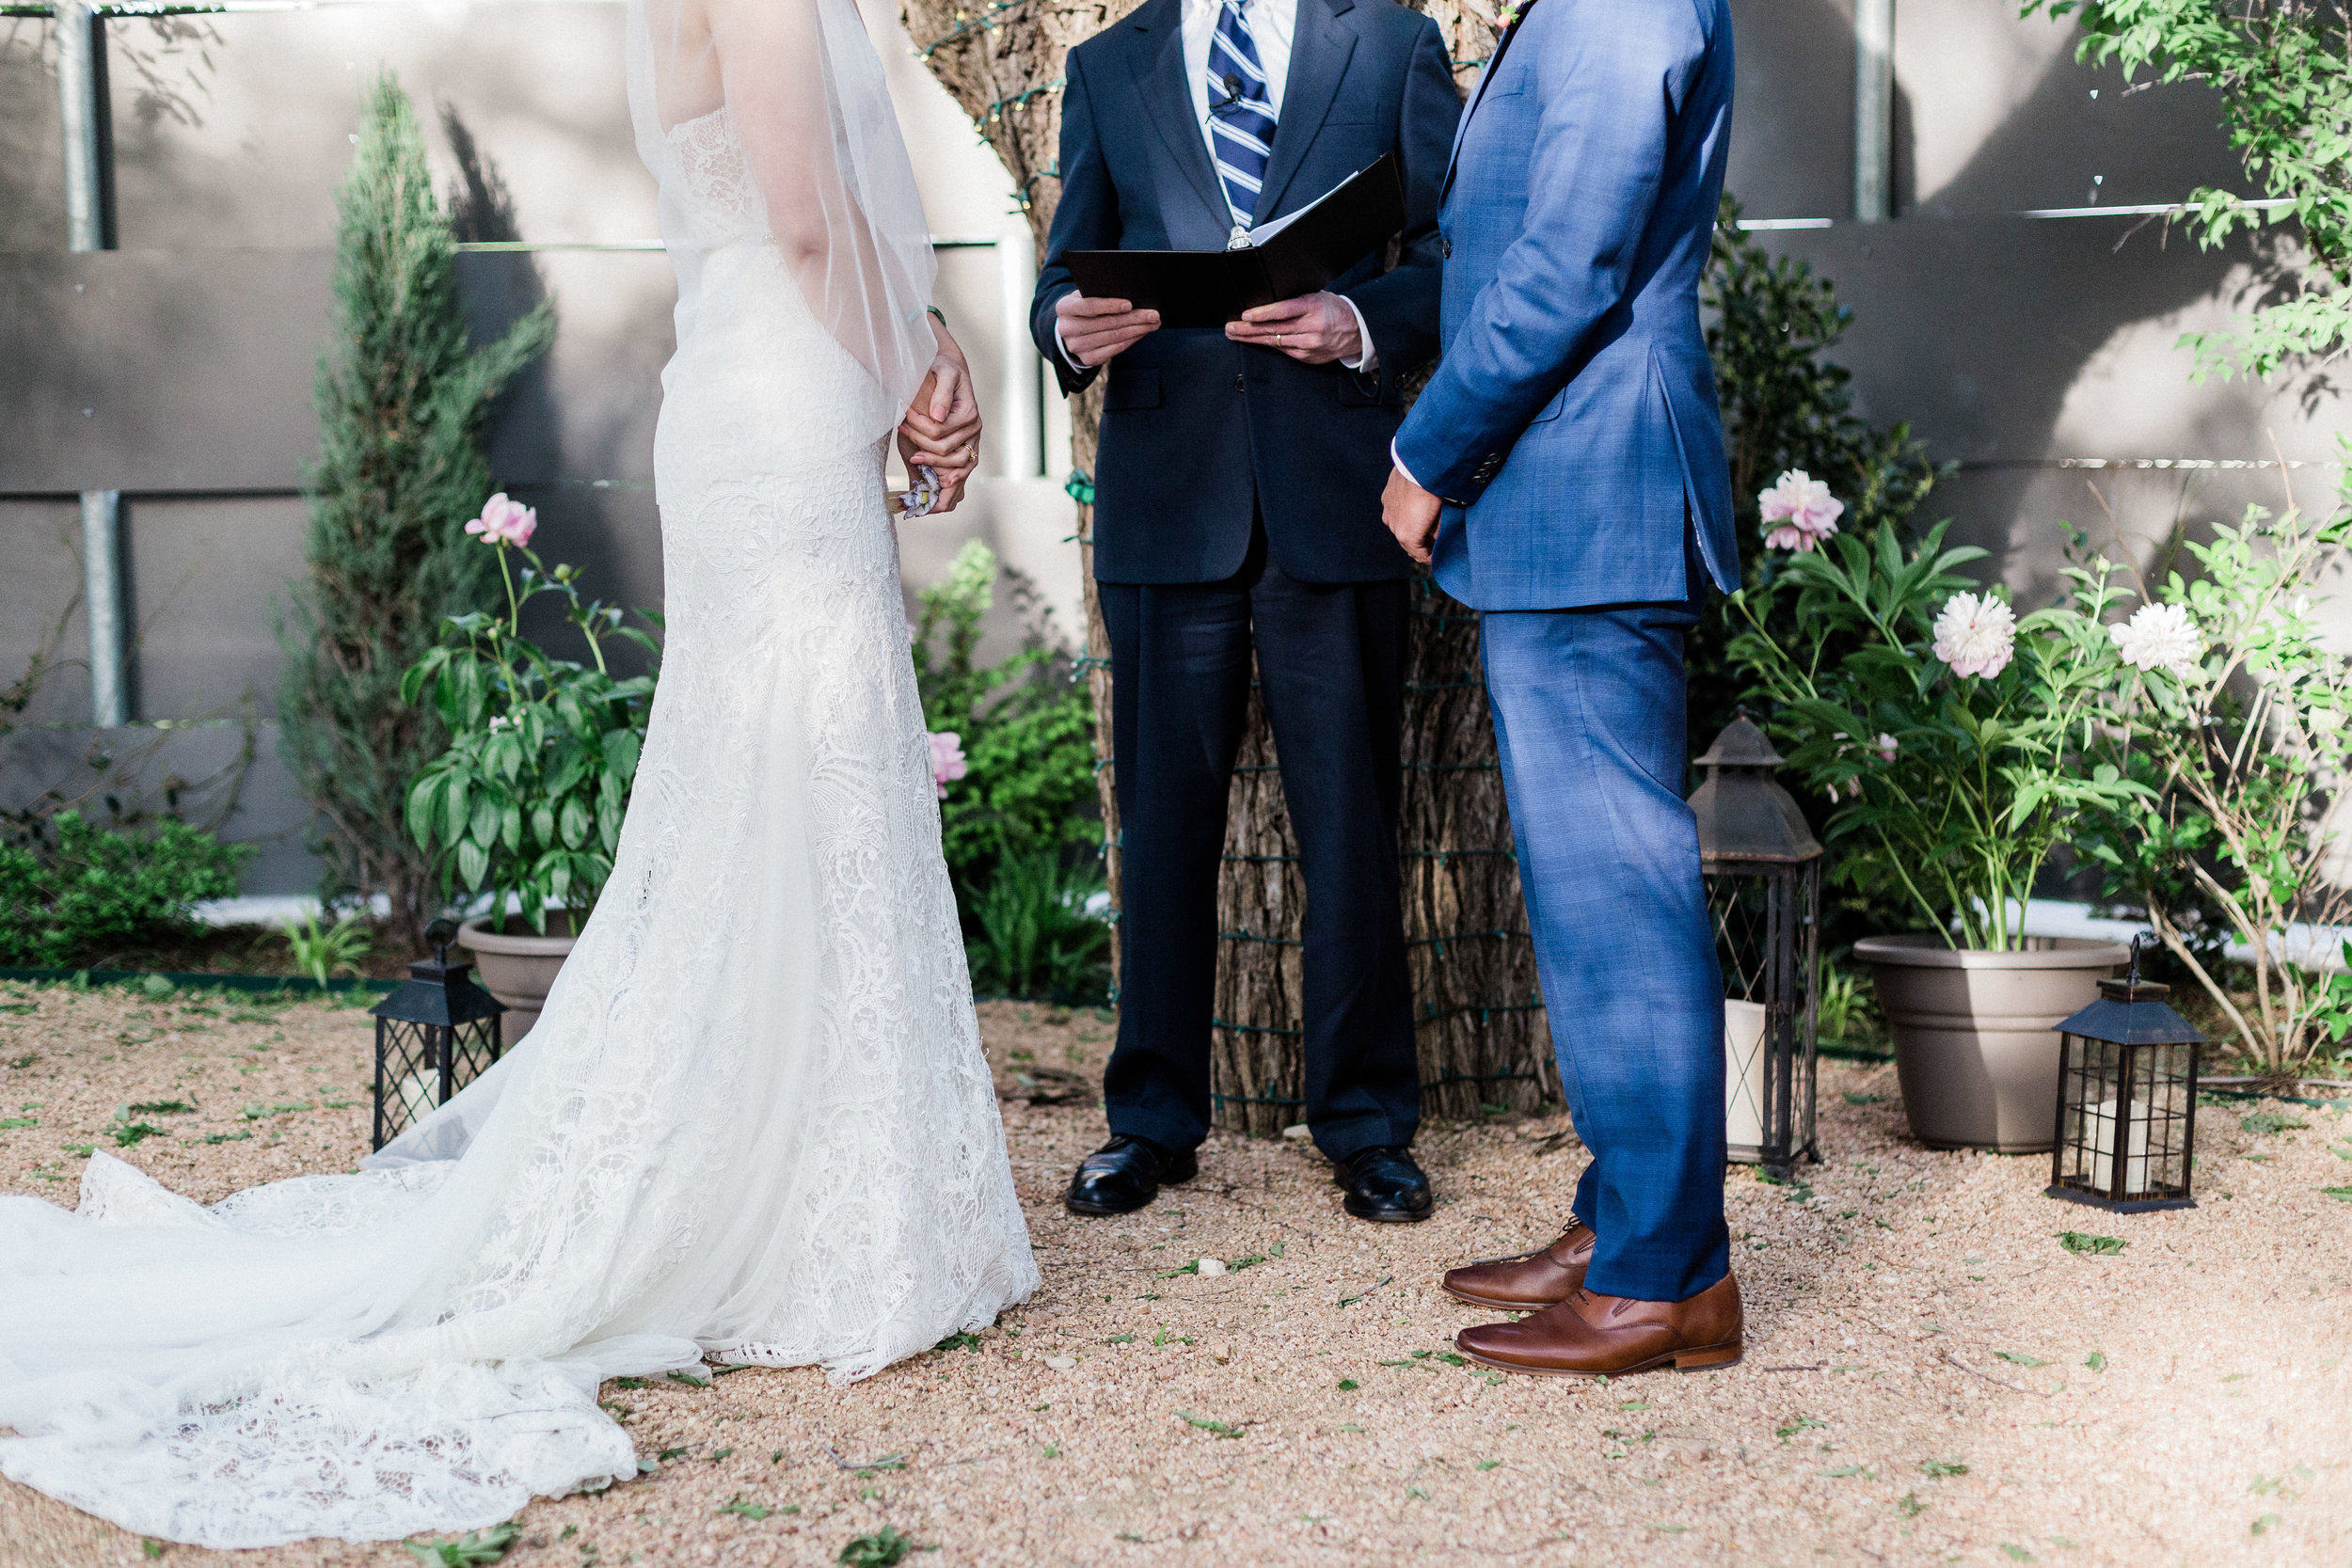 Wedding Ceremony at Outdoor Wedding in Fort Worth Texas at Artspace 111